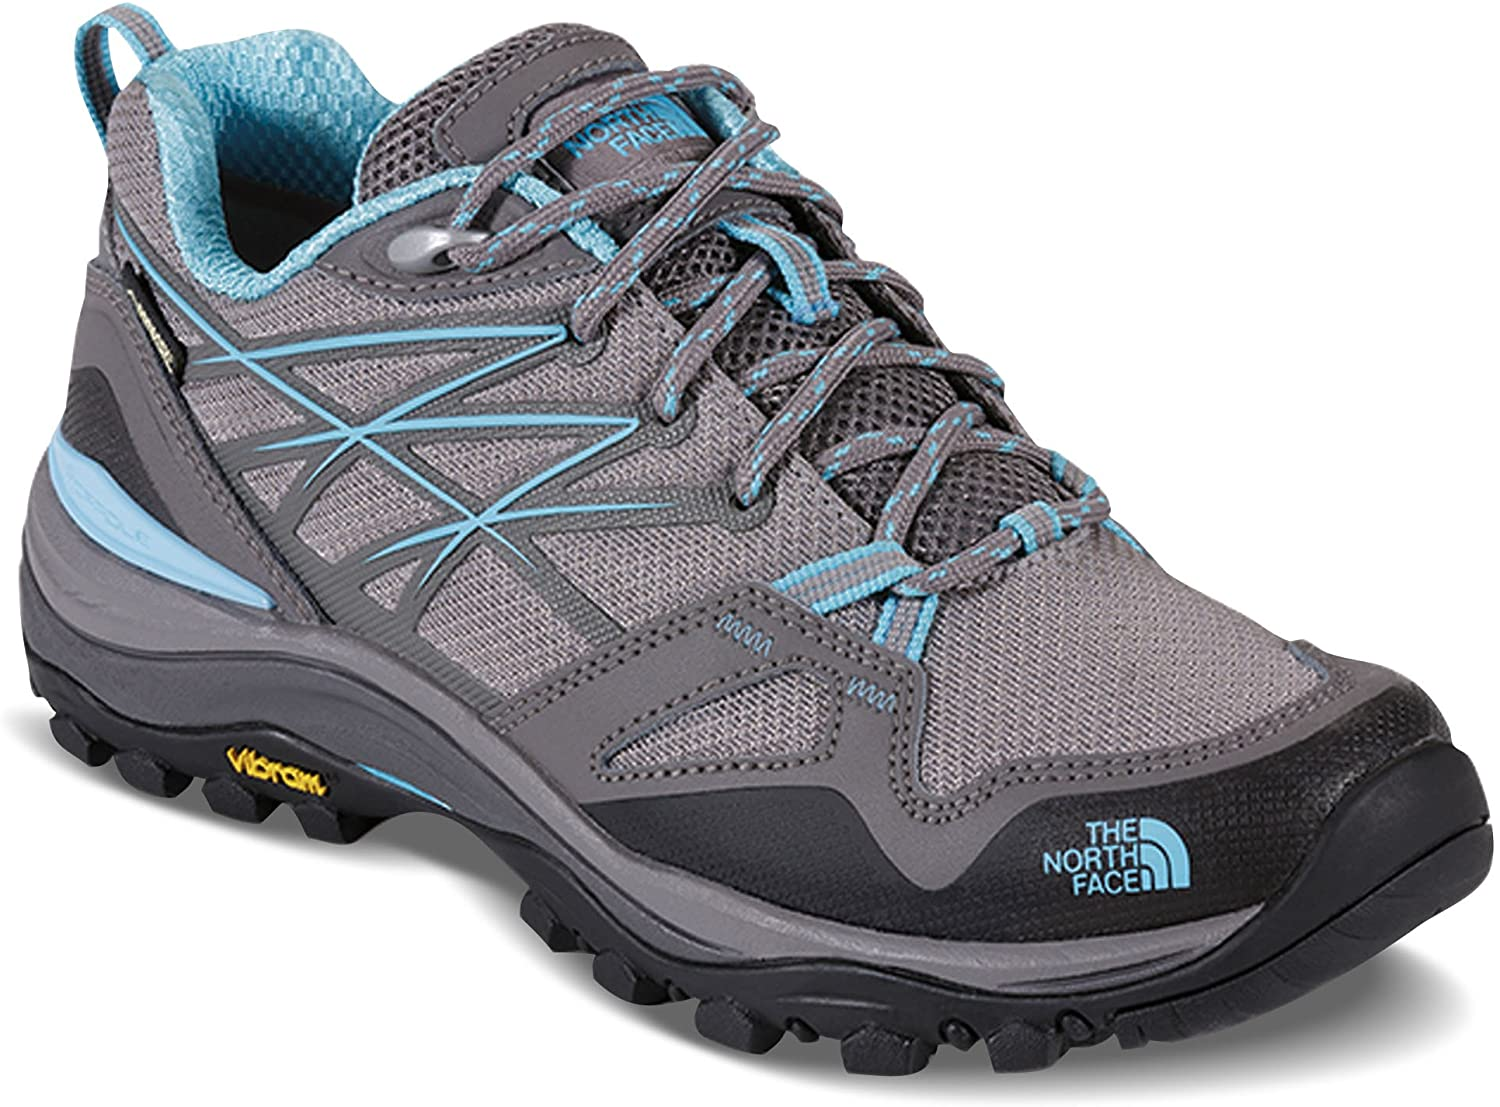 The North Face Women's Hedgehog Fastpack GTX Hiking shoes